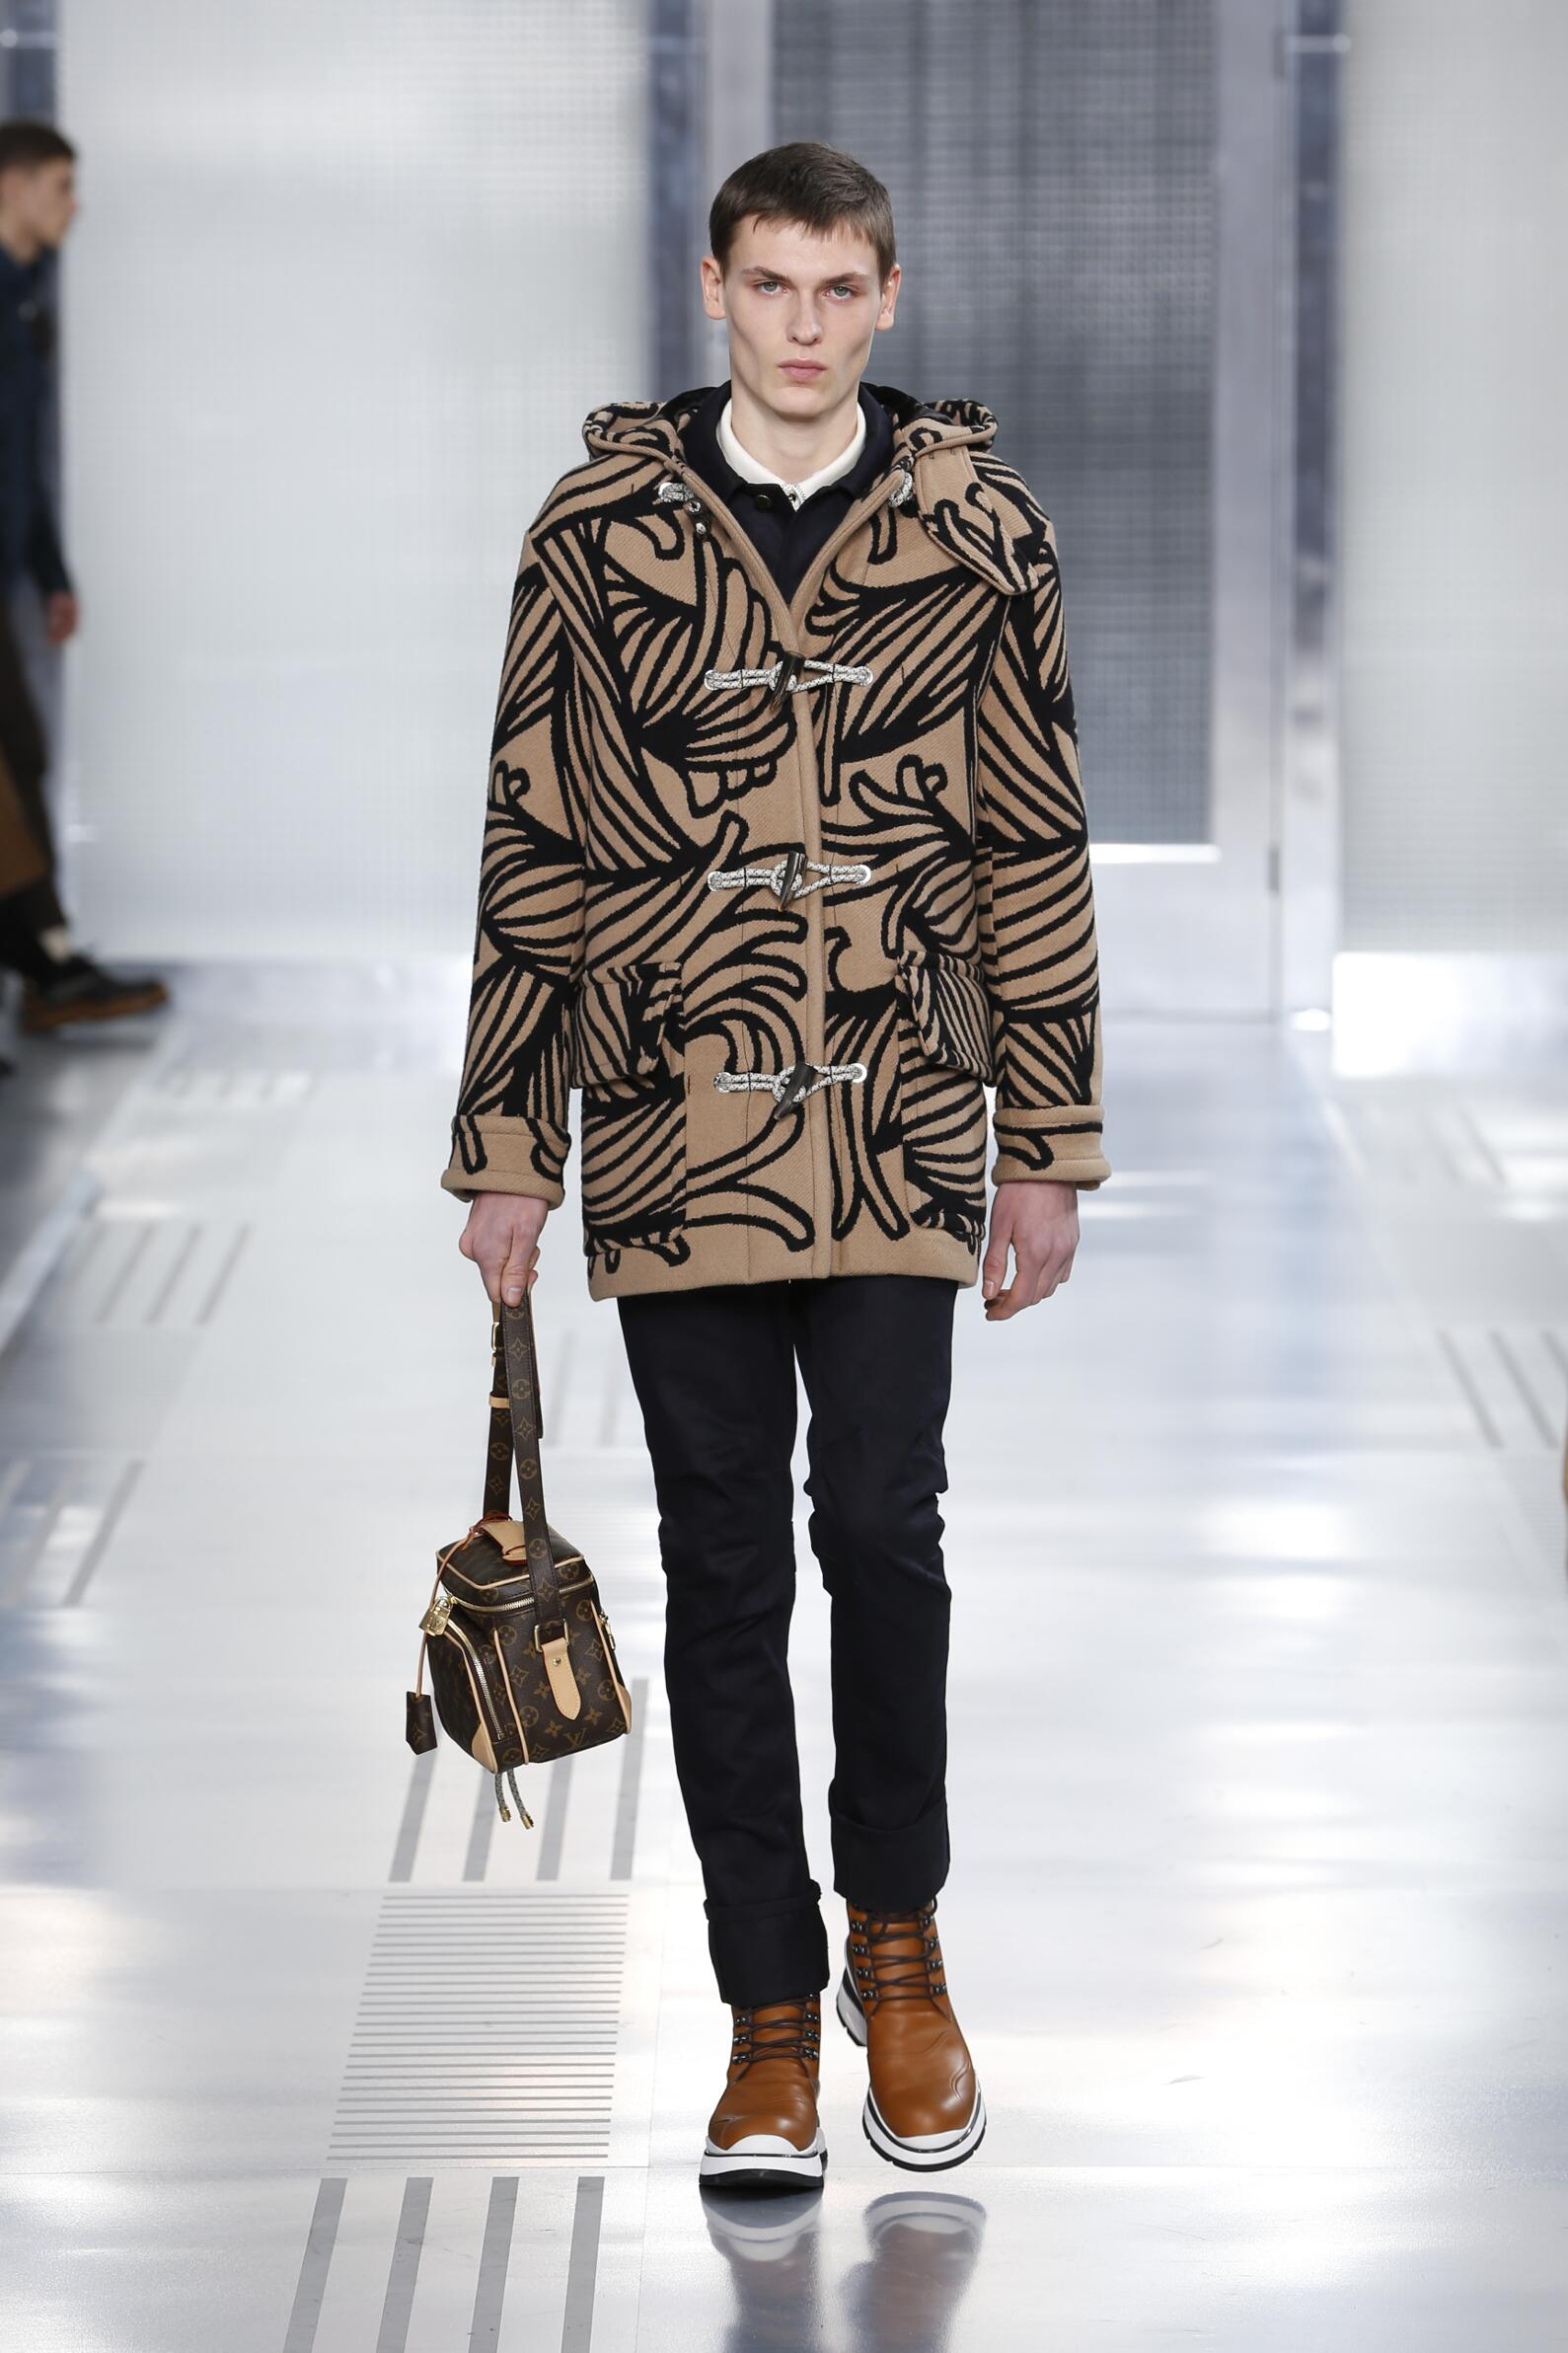 Louis Vuitton Collection Fashion Show FW 2015 2016